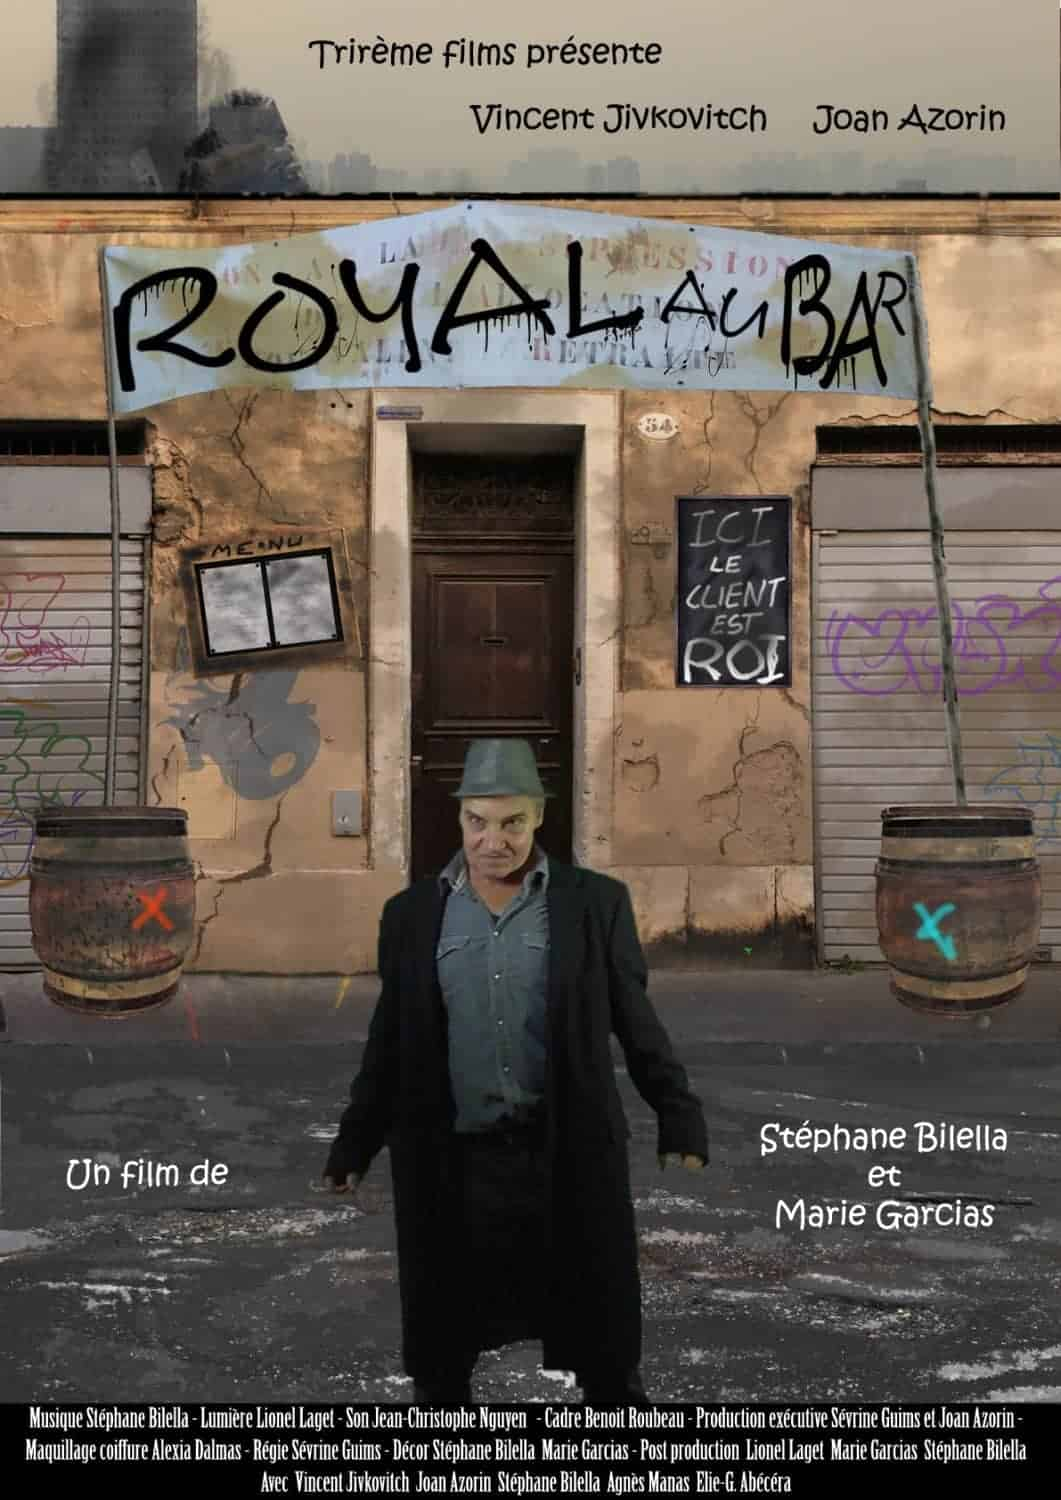 The King of the Bar*